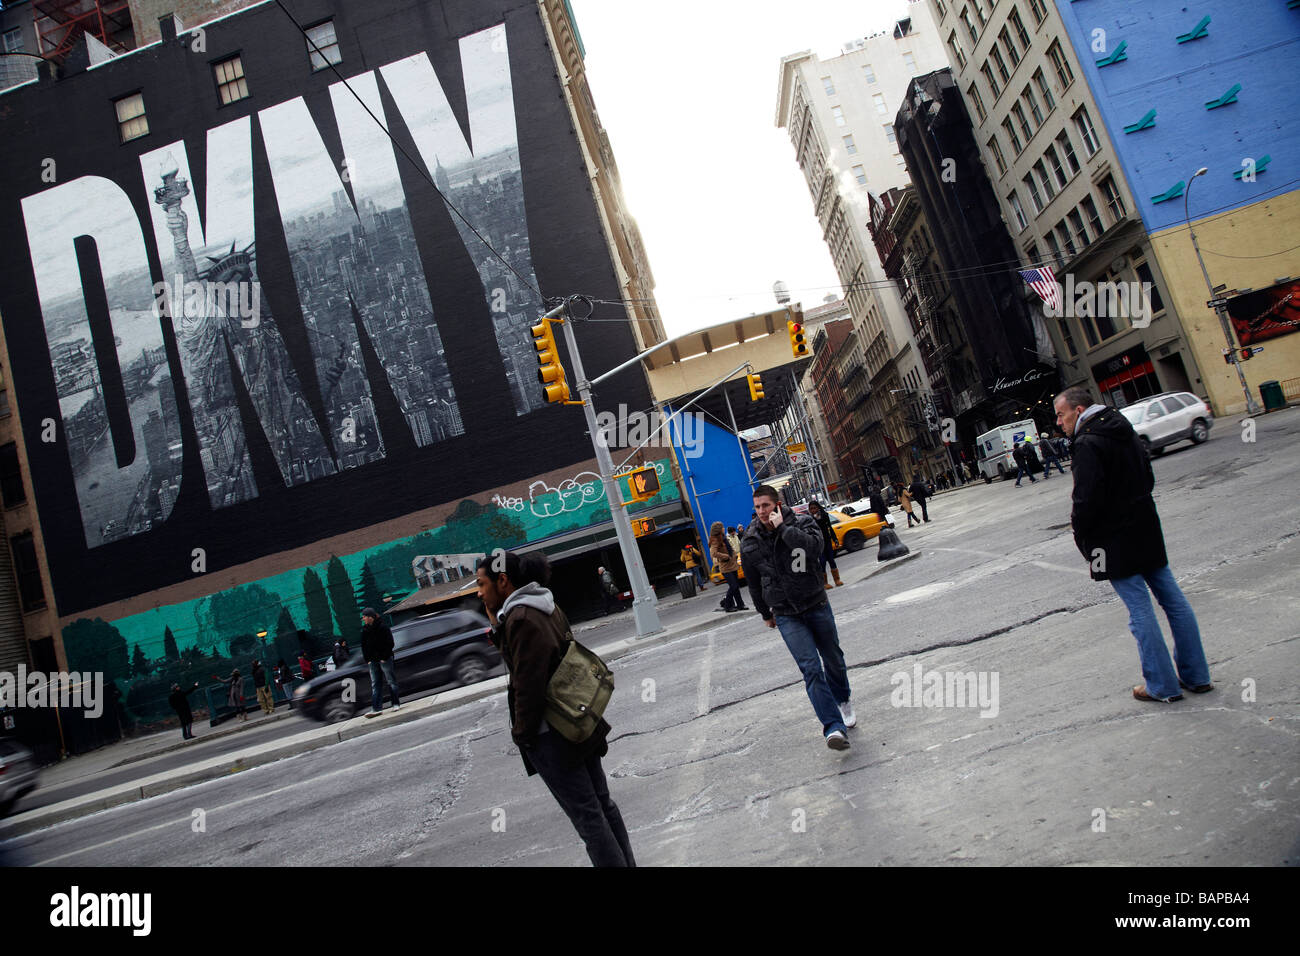 street scene, DKNY billboard, New York - Stock Image